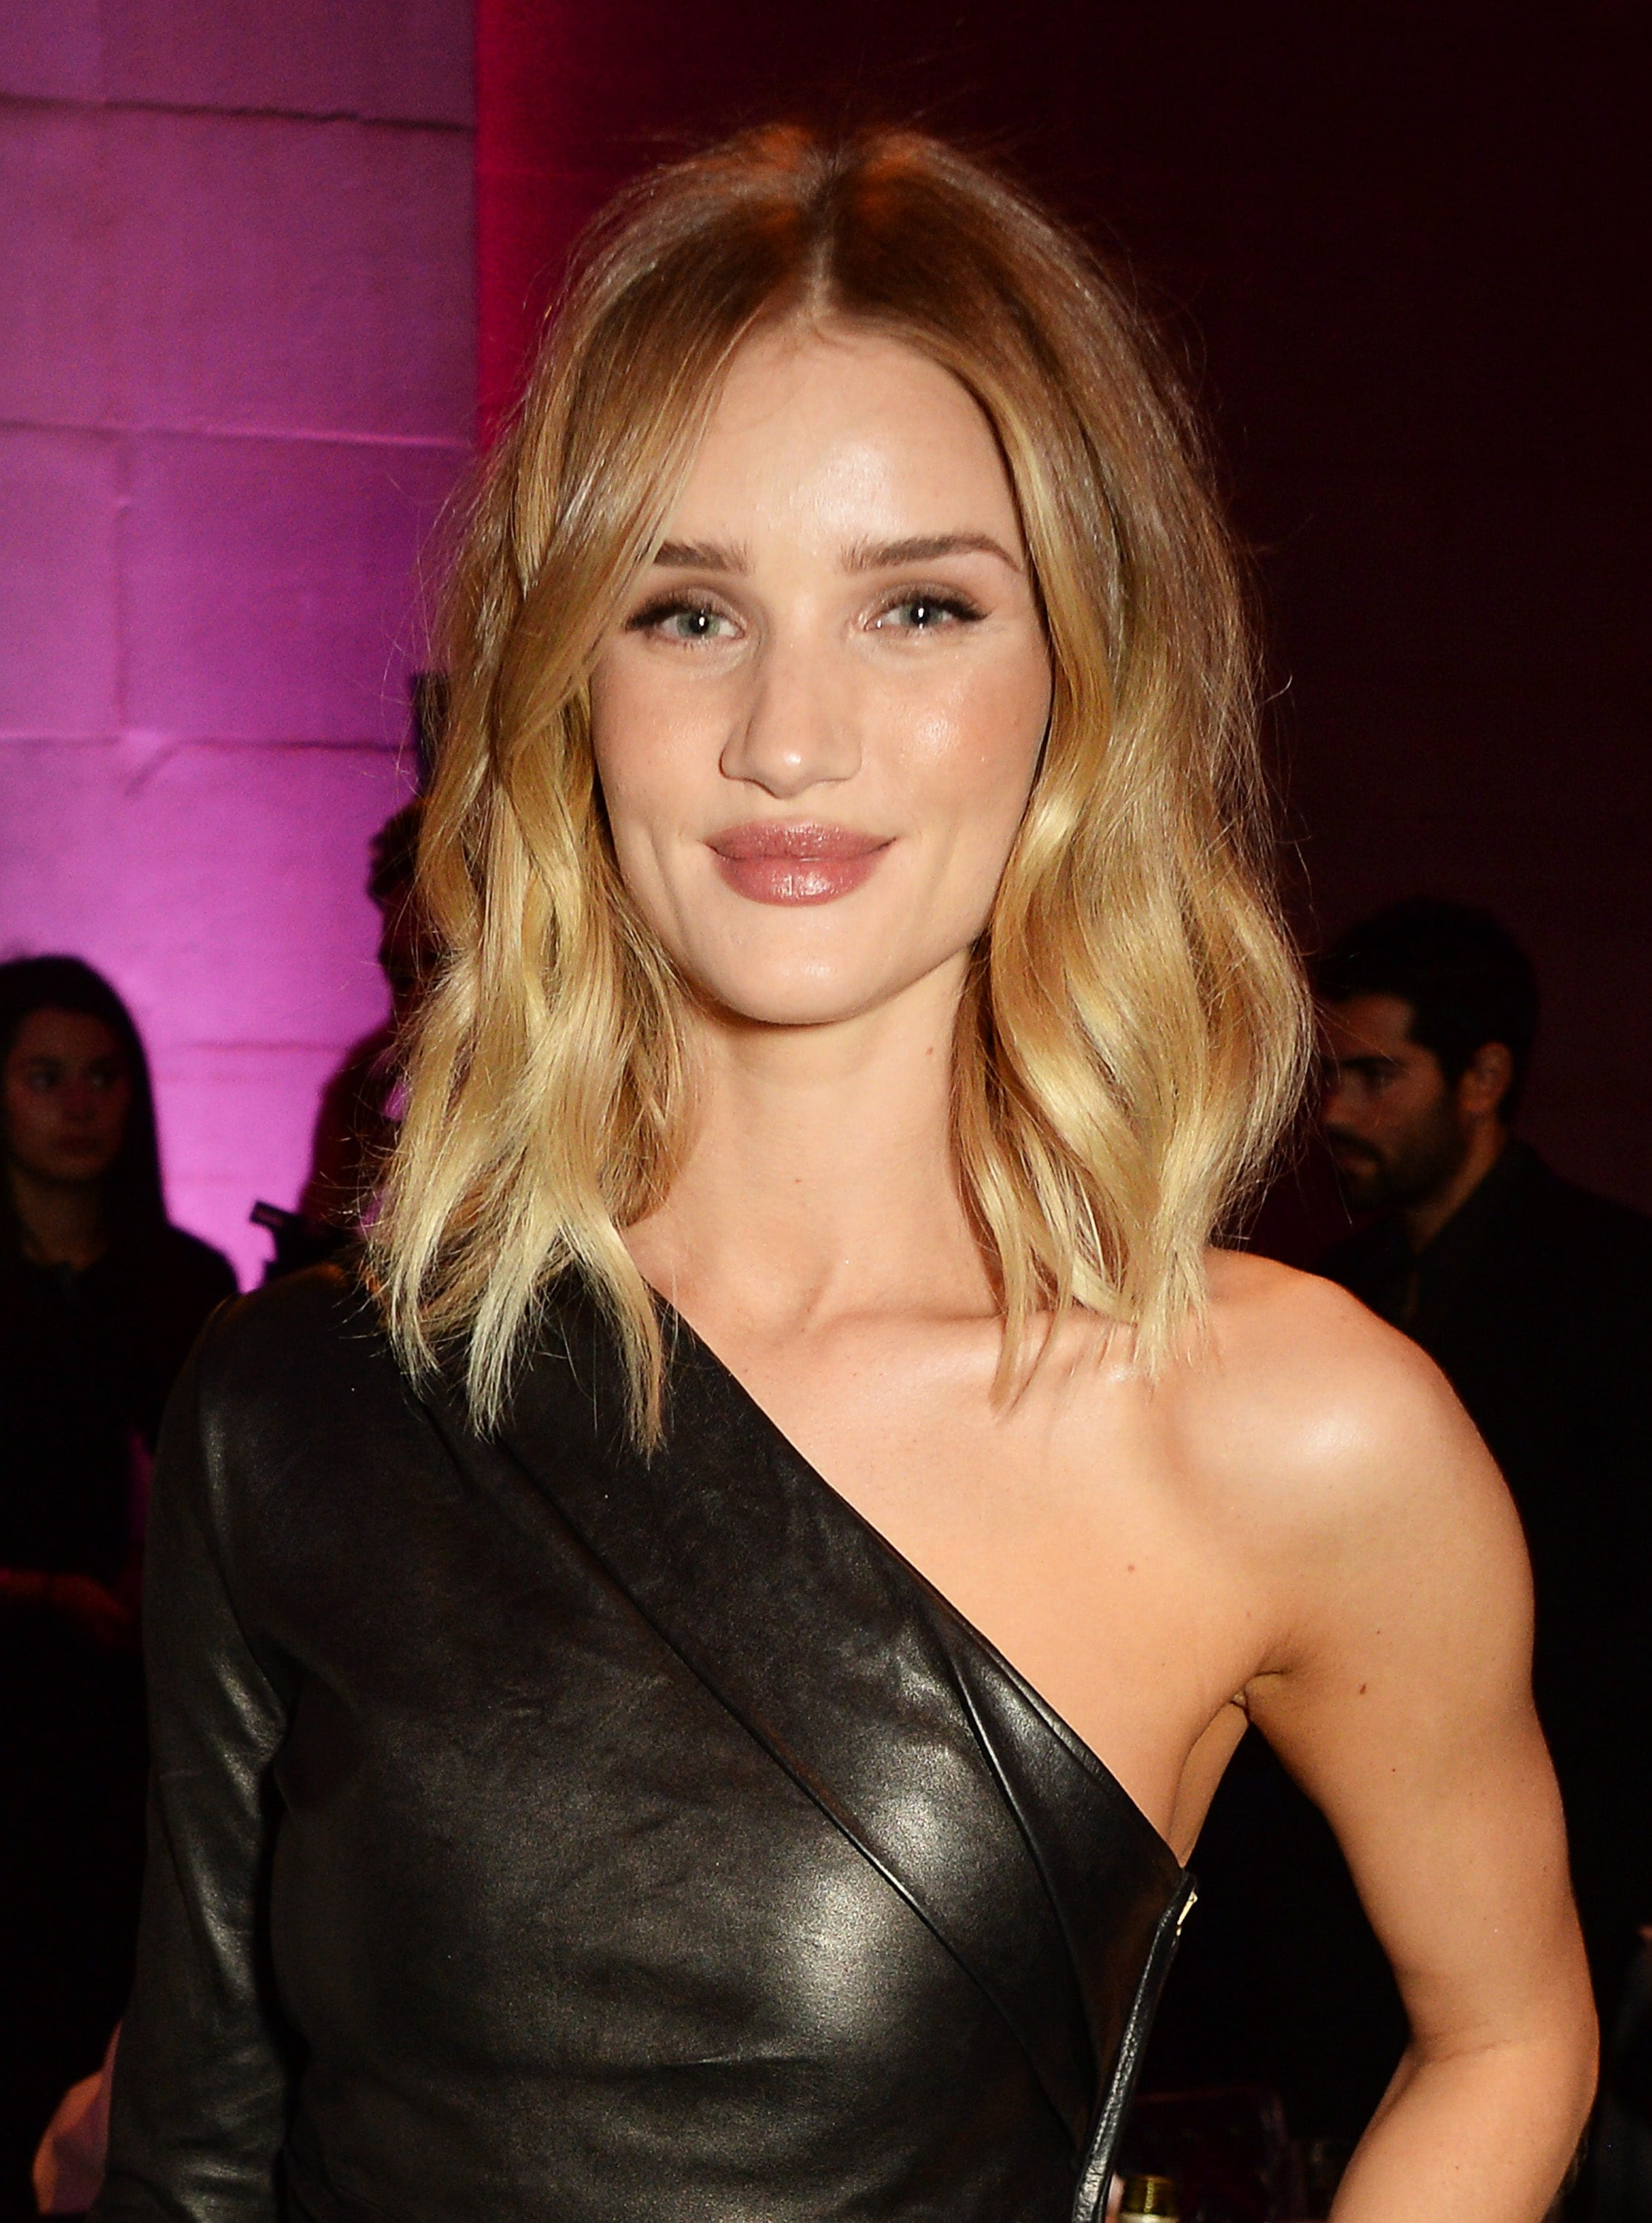 Modern Bob Hairstyles: All Things Hair - IMAGE - Rosie-Huntington Whiteley shaggy blonde bob